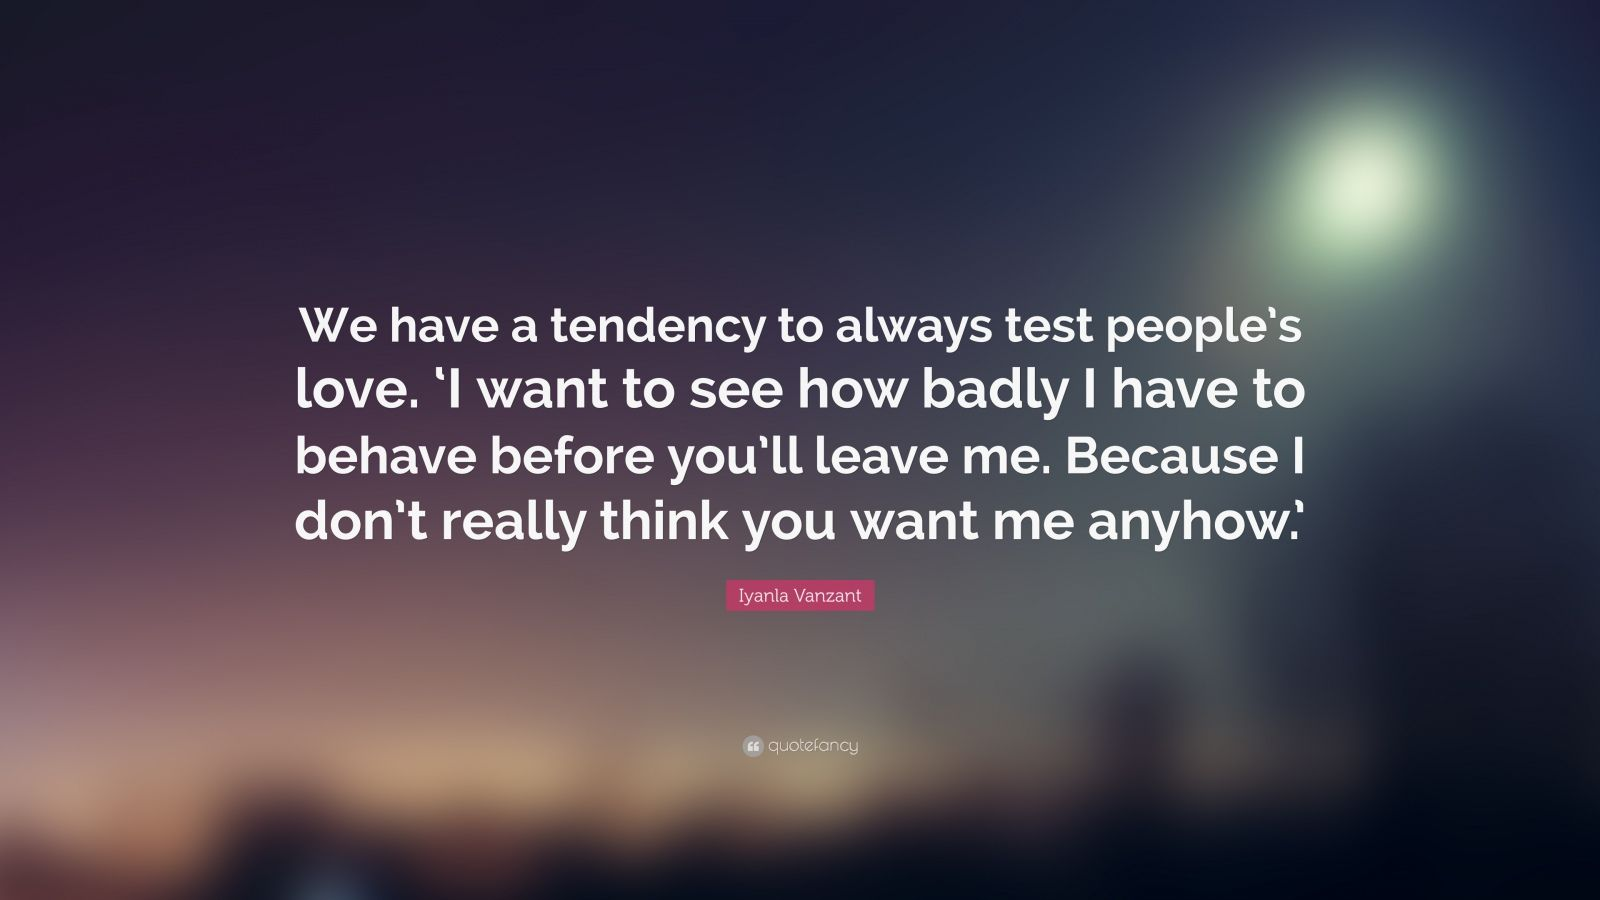 "Iyanla Vanzant Quote: ""We have a tendency to always test people's love. 'I want to see how badly I have to behave before you'll leave me. Because I don't really think you want me anyhow.'"""